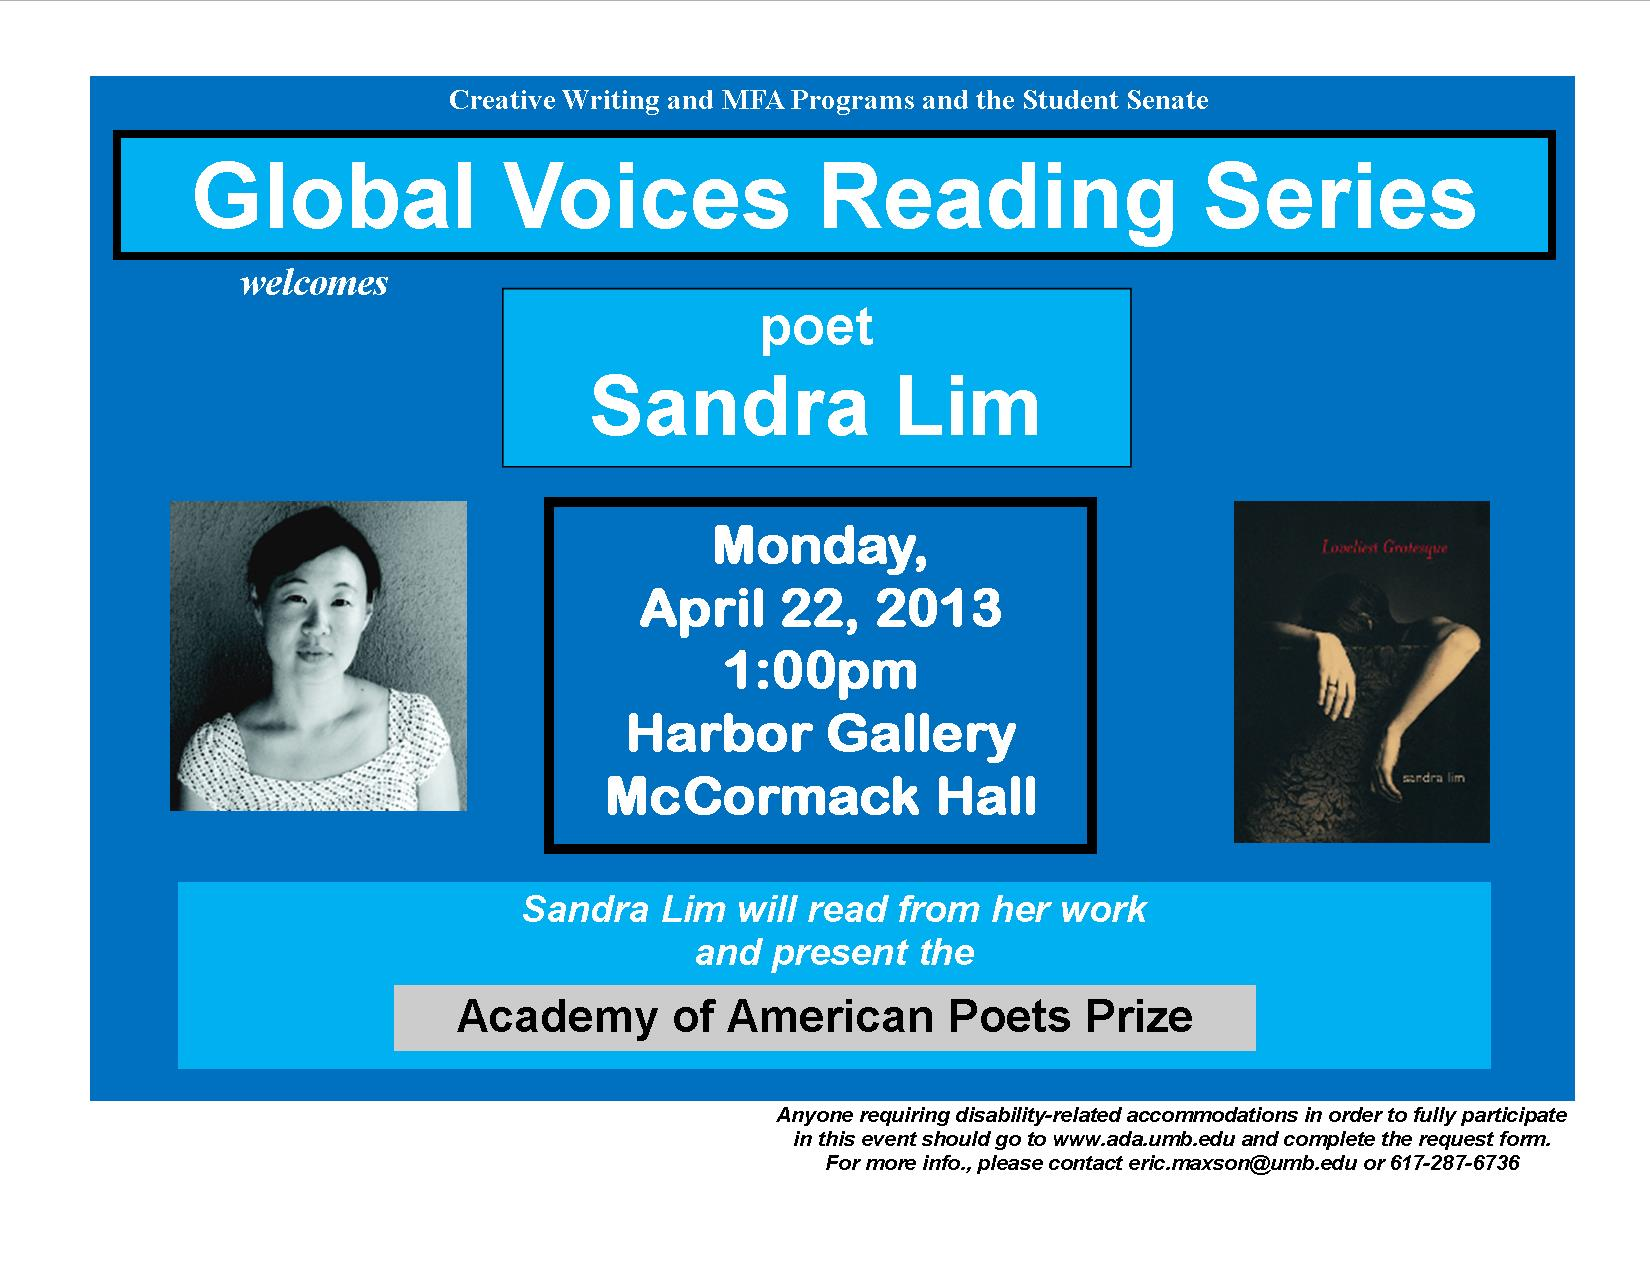 Creative Writing and MFA Programs and Student Senate. Global Voices Reading Series welcomes Poet Sandra Lim. Monday, April 22, 2013 1:00 Harbor Gallery McCormack Hall. Sandra Lim will read from her work and present the Academy of American Poets Prize. Anyone requiring disability-related accommodations in order to fully participate in this event should go to www.ada.umb.edu and complete the request form.  For more info., please contact eric.maxson@umb.edu or 617-287-6736